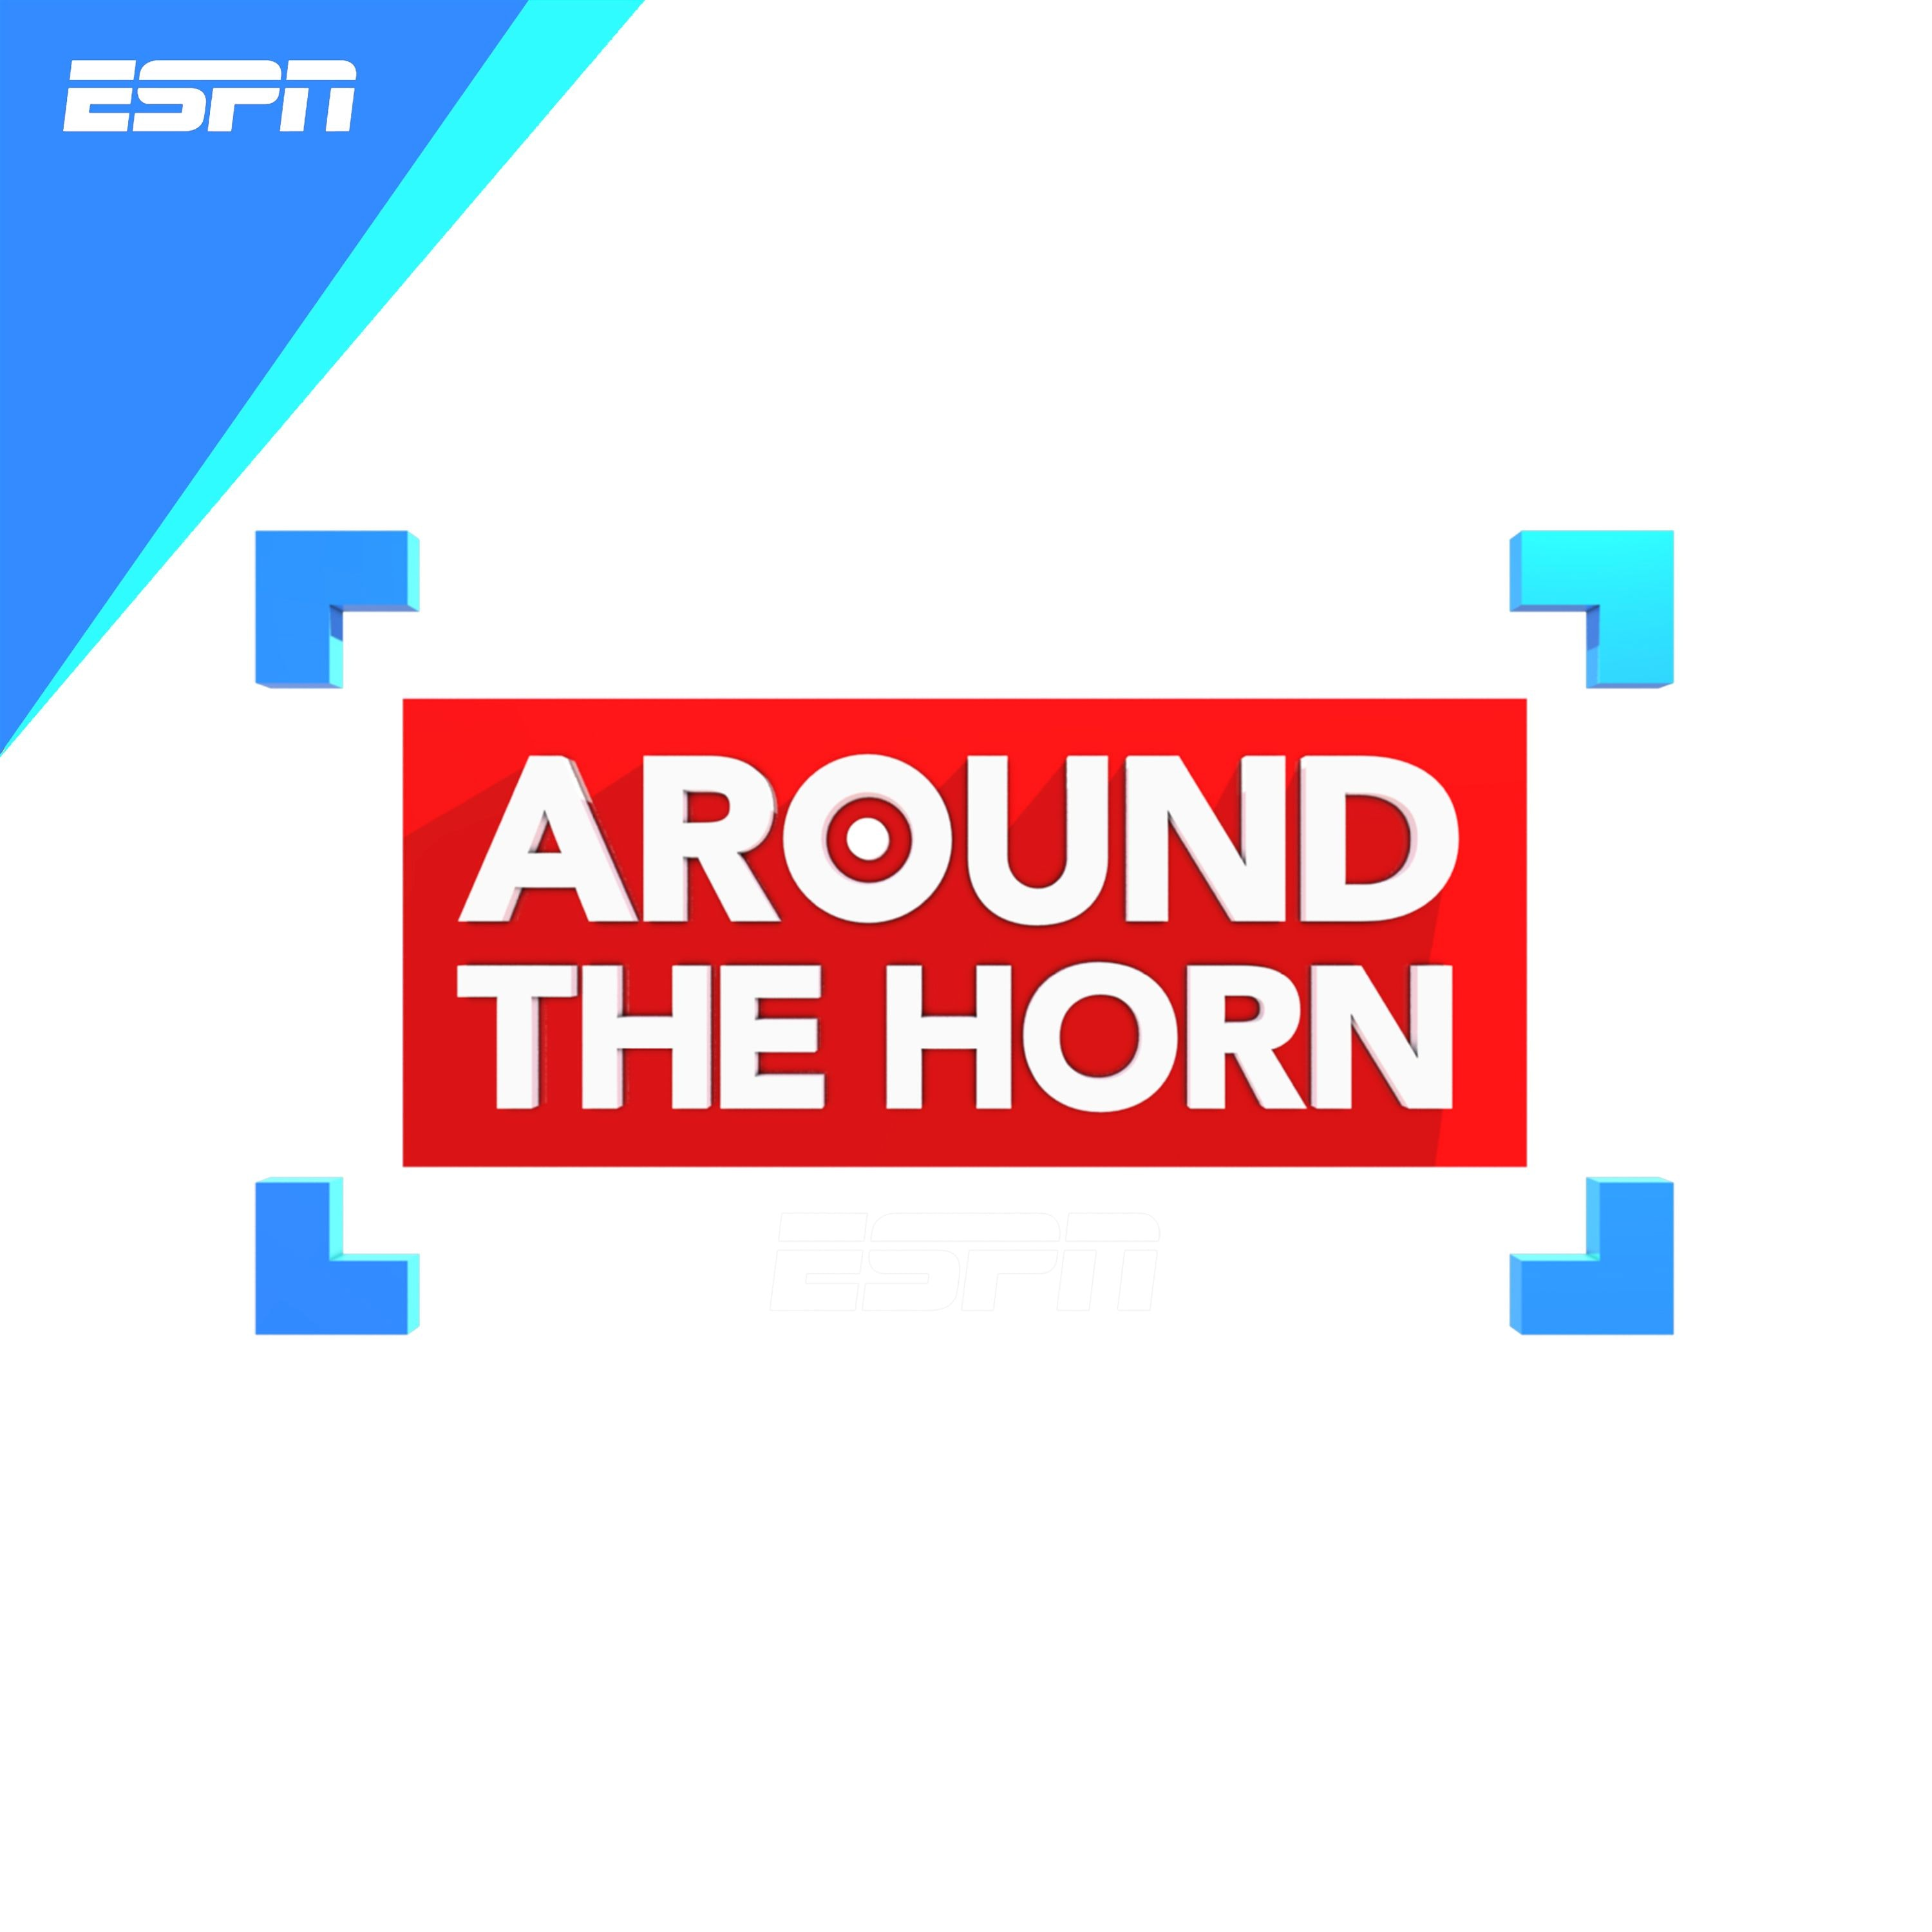 ESPN: Around the Horn